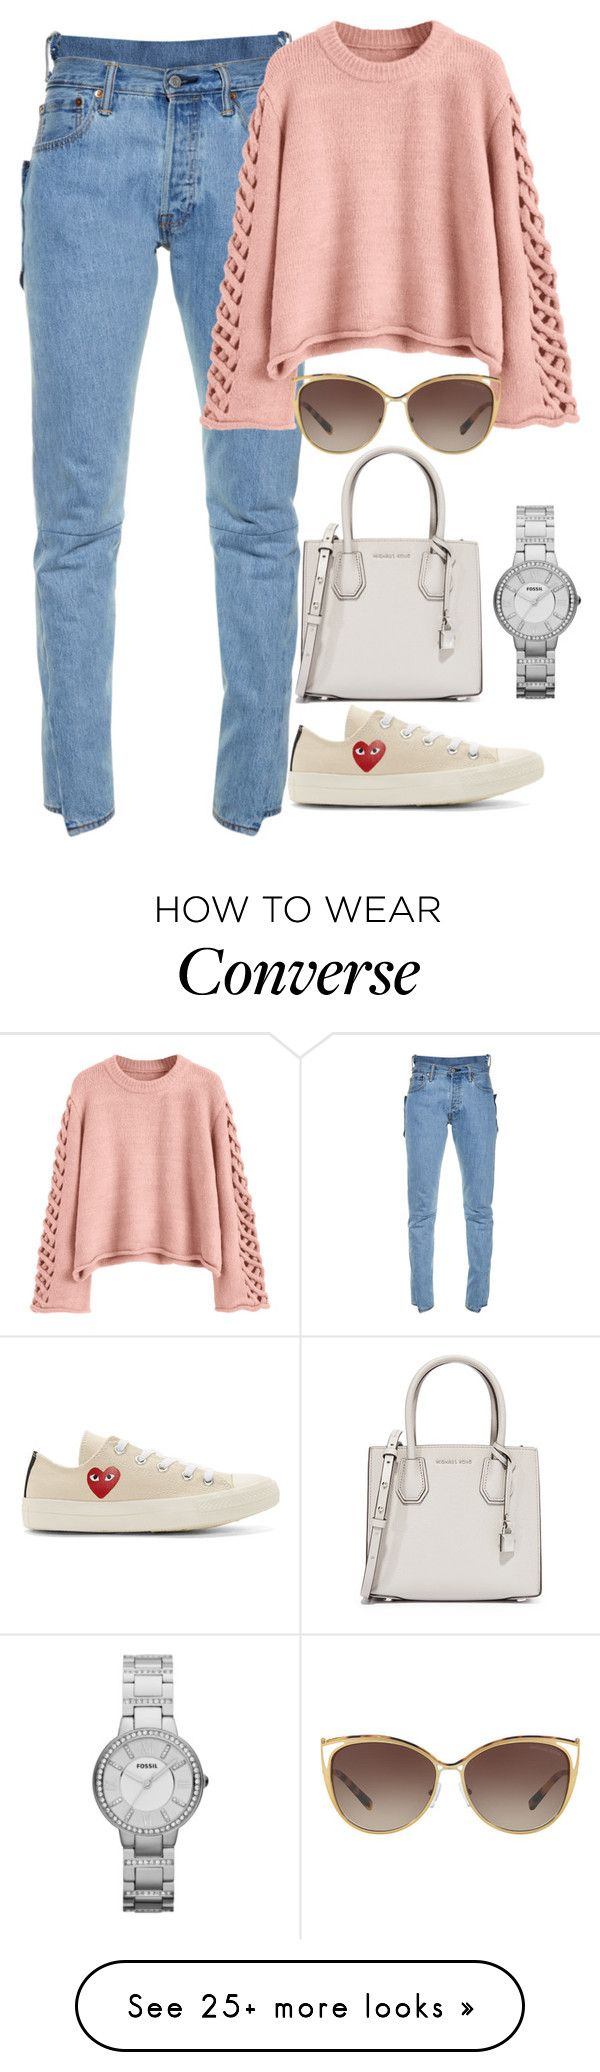 """Untitled #1347"" by hunterxx on Polyvore featuring Vetements, Play Comme des Garçons, MICHAEL Michael Kors, FOSSIL and Michael Kors"